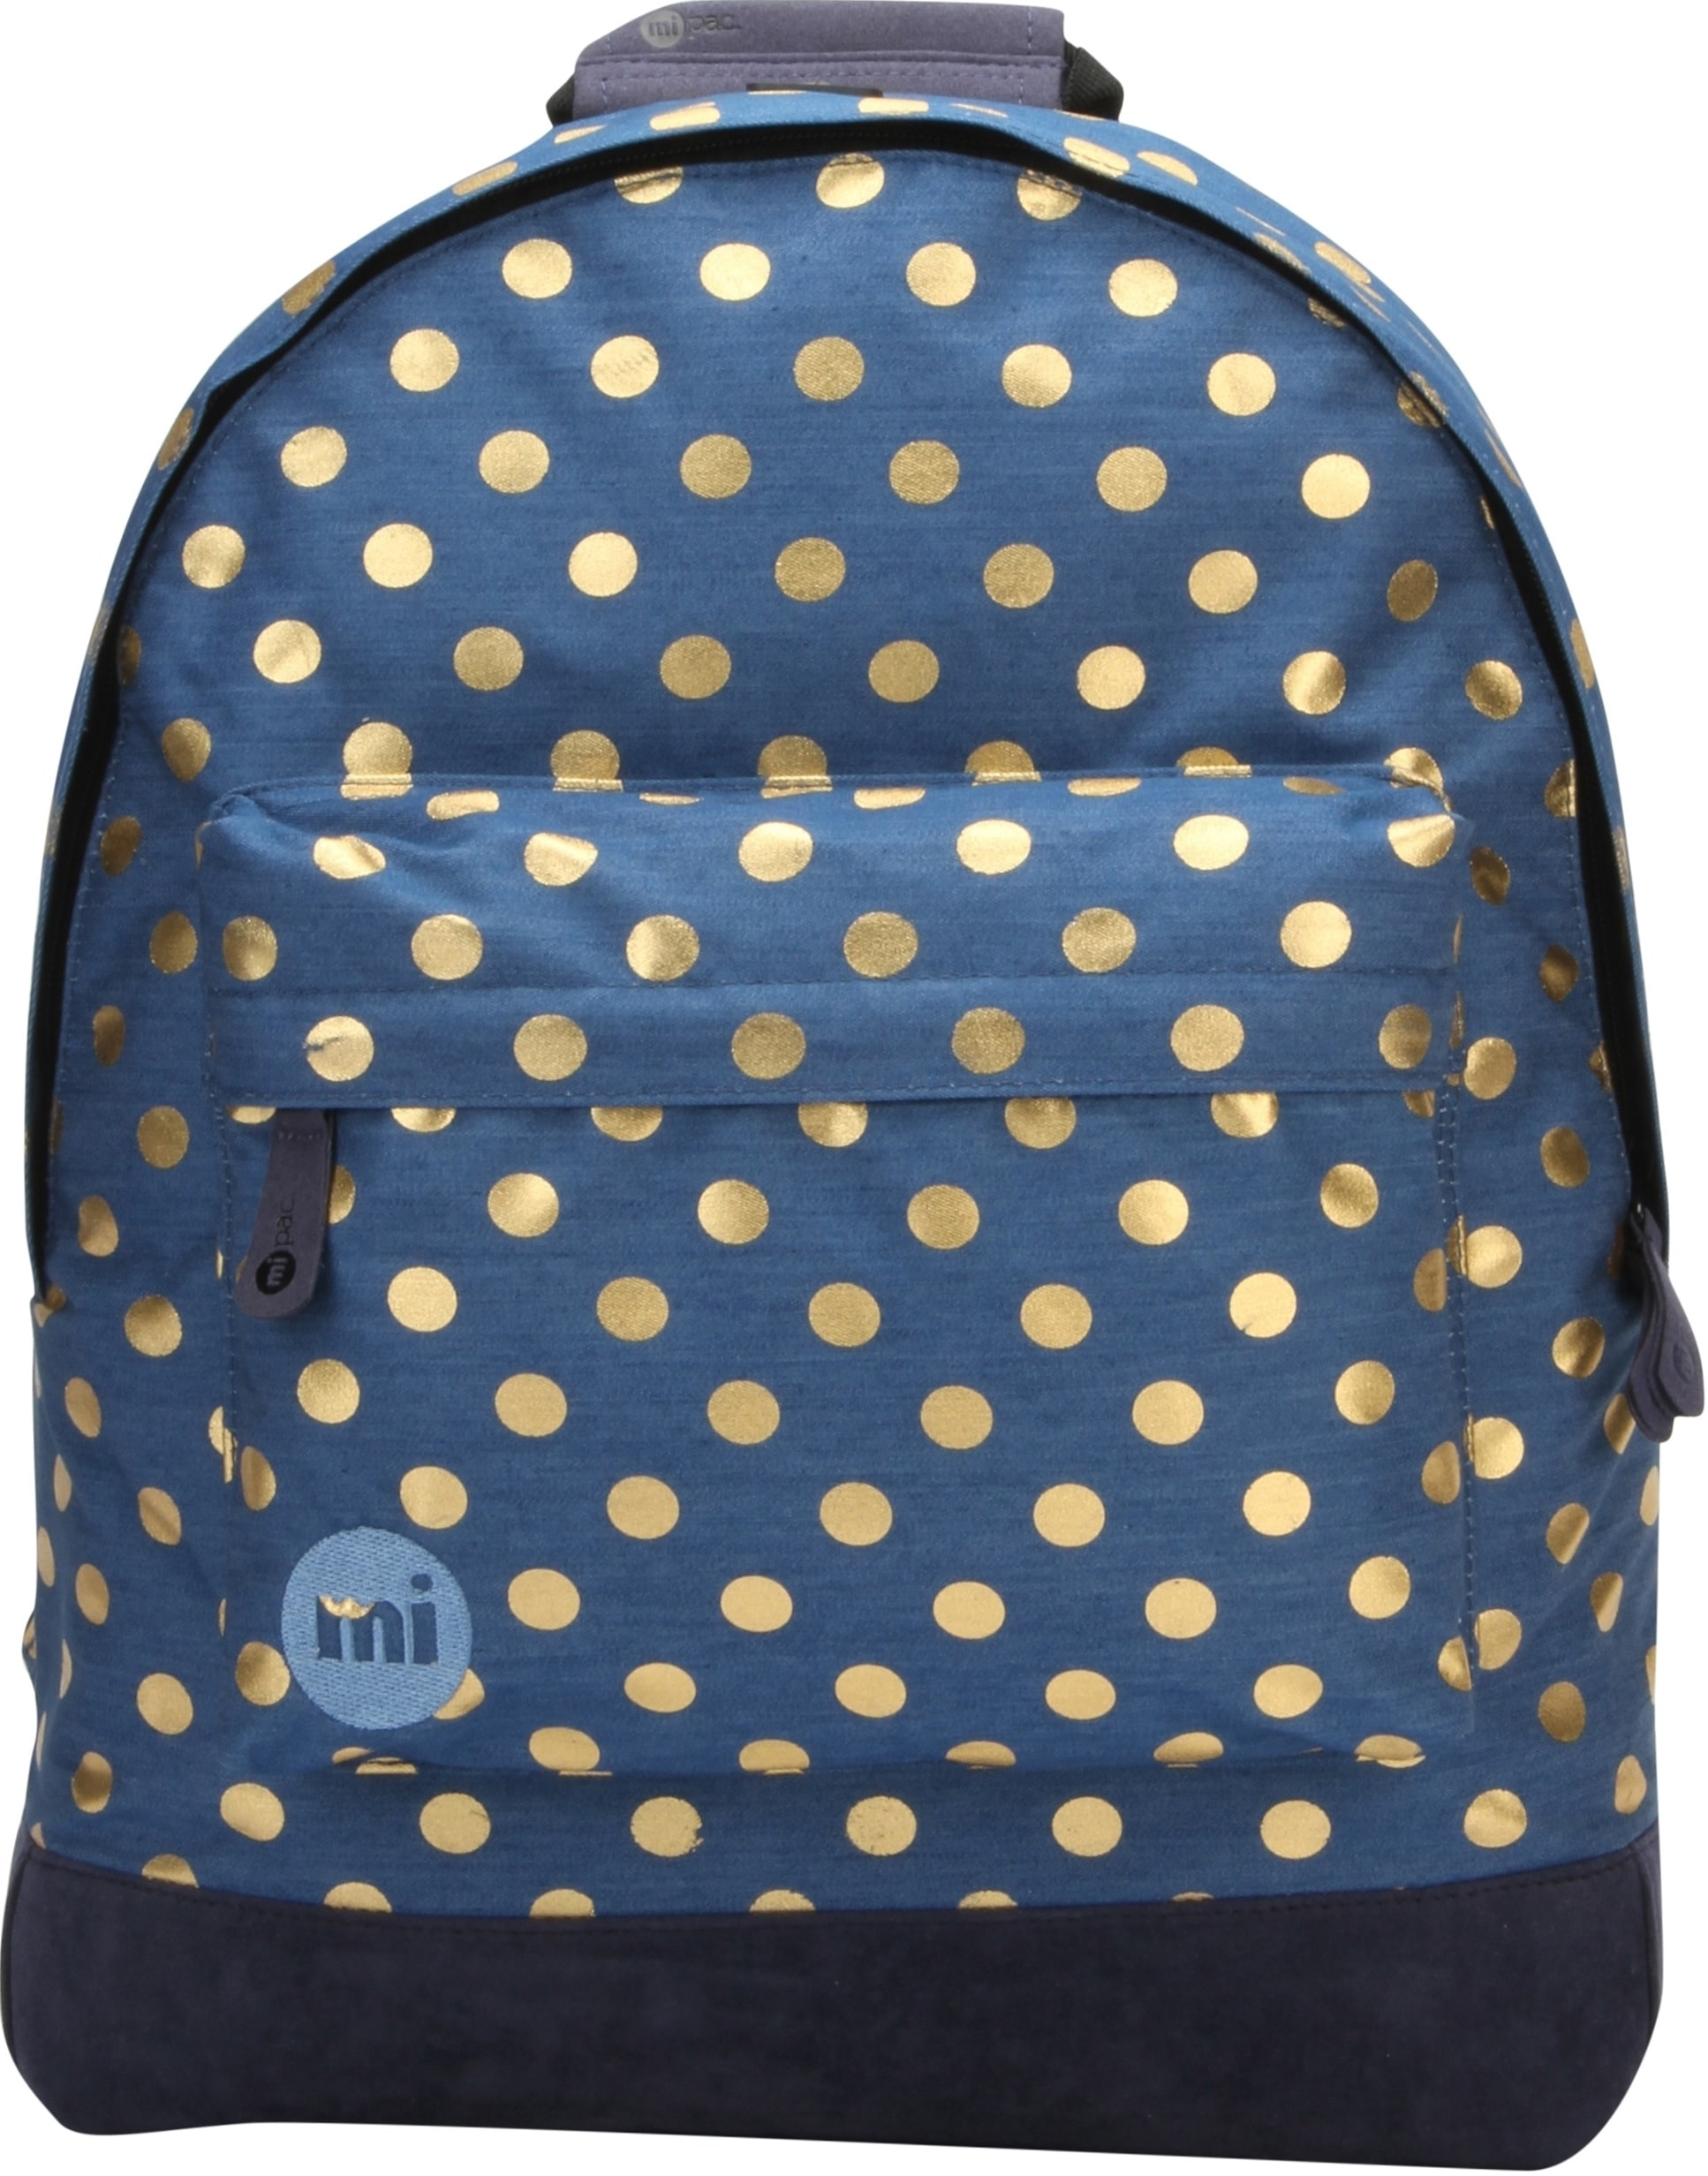 MiPac Denim Polka Backpack  IndigoGold